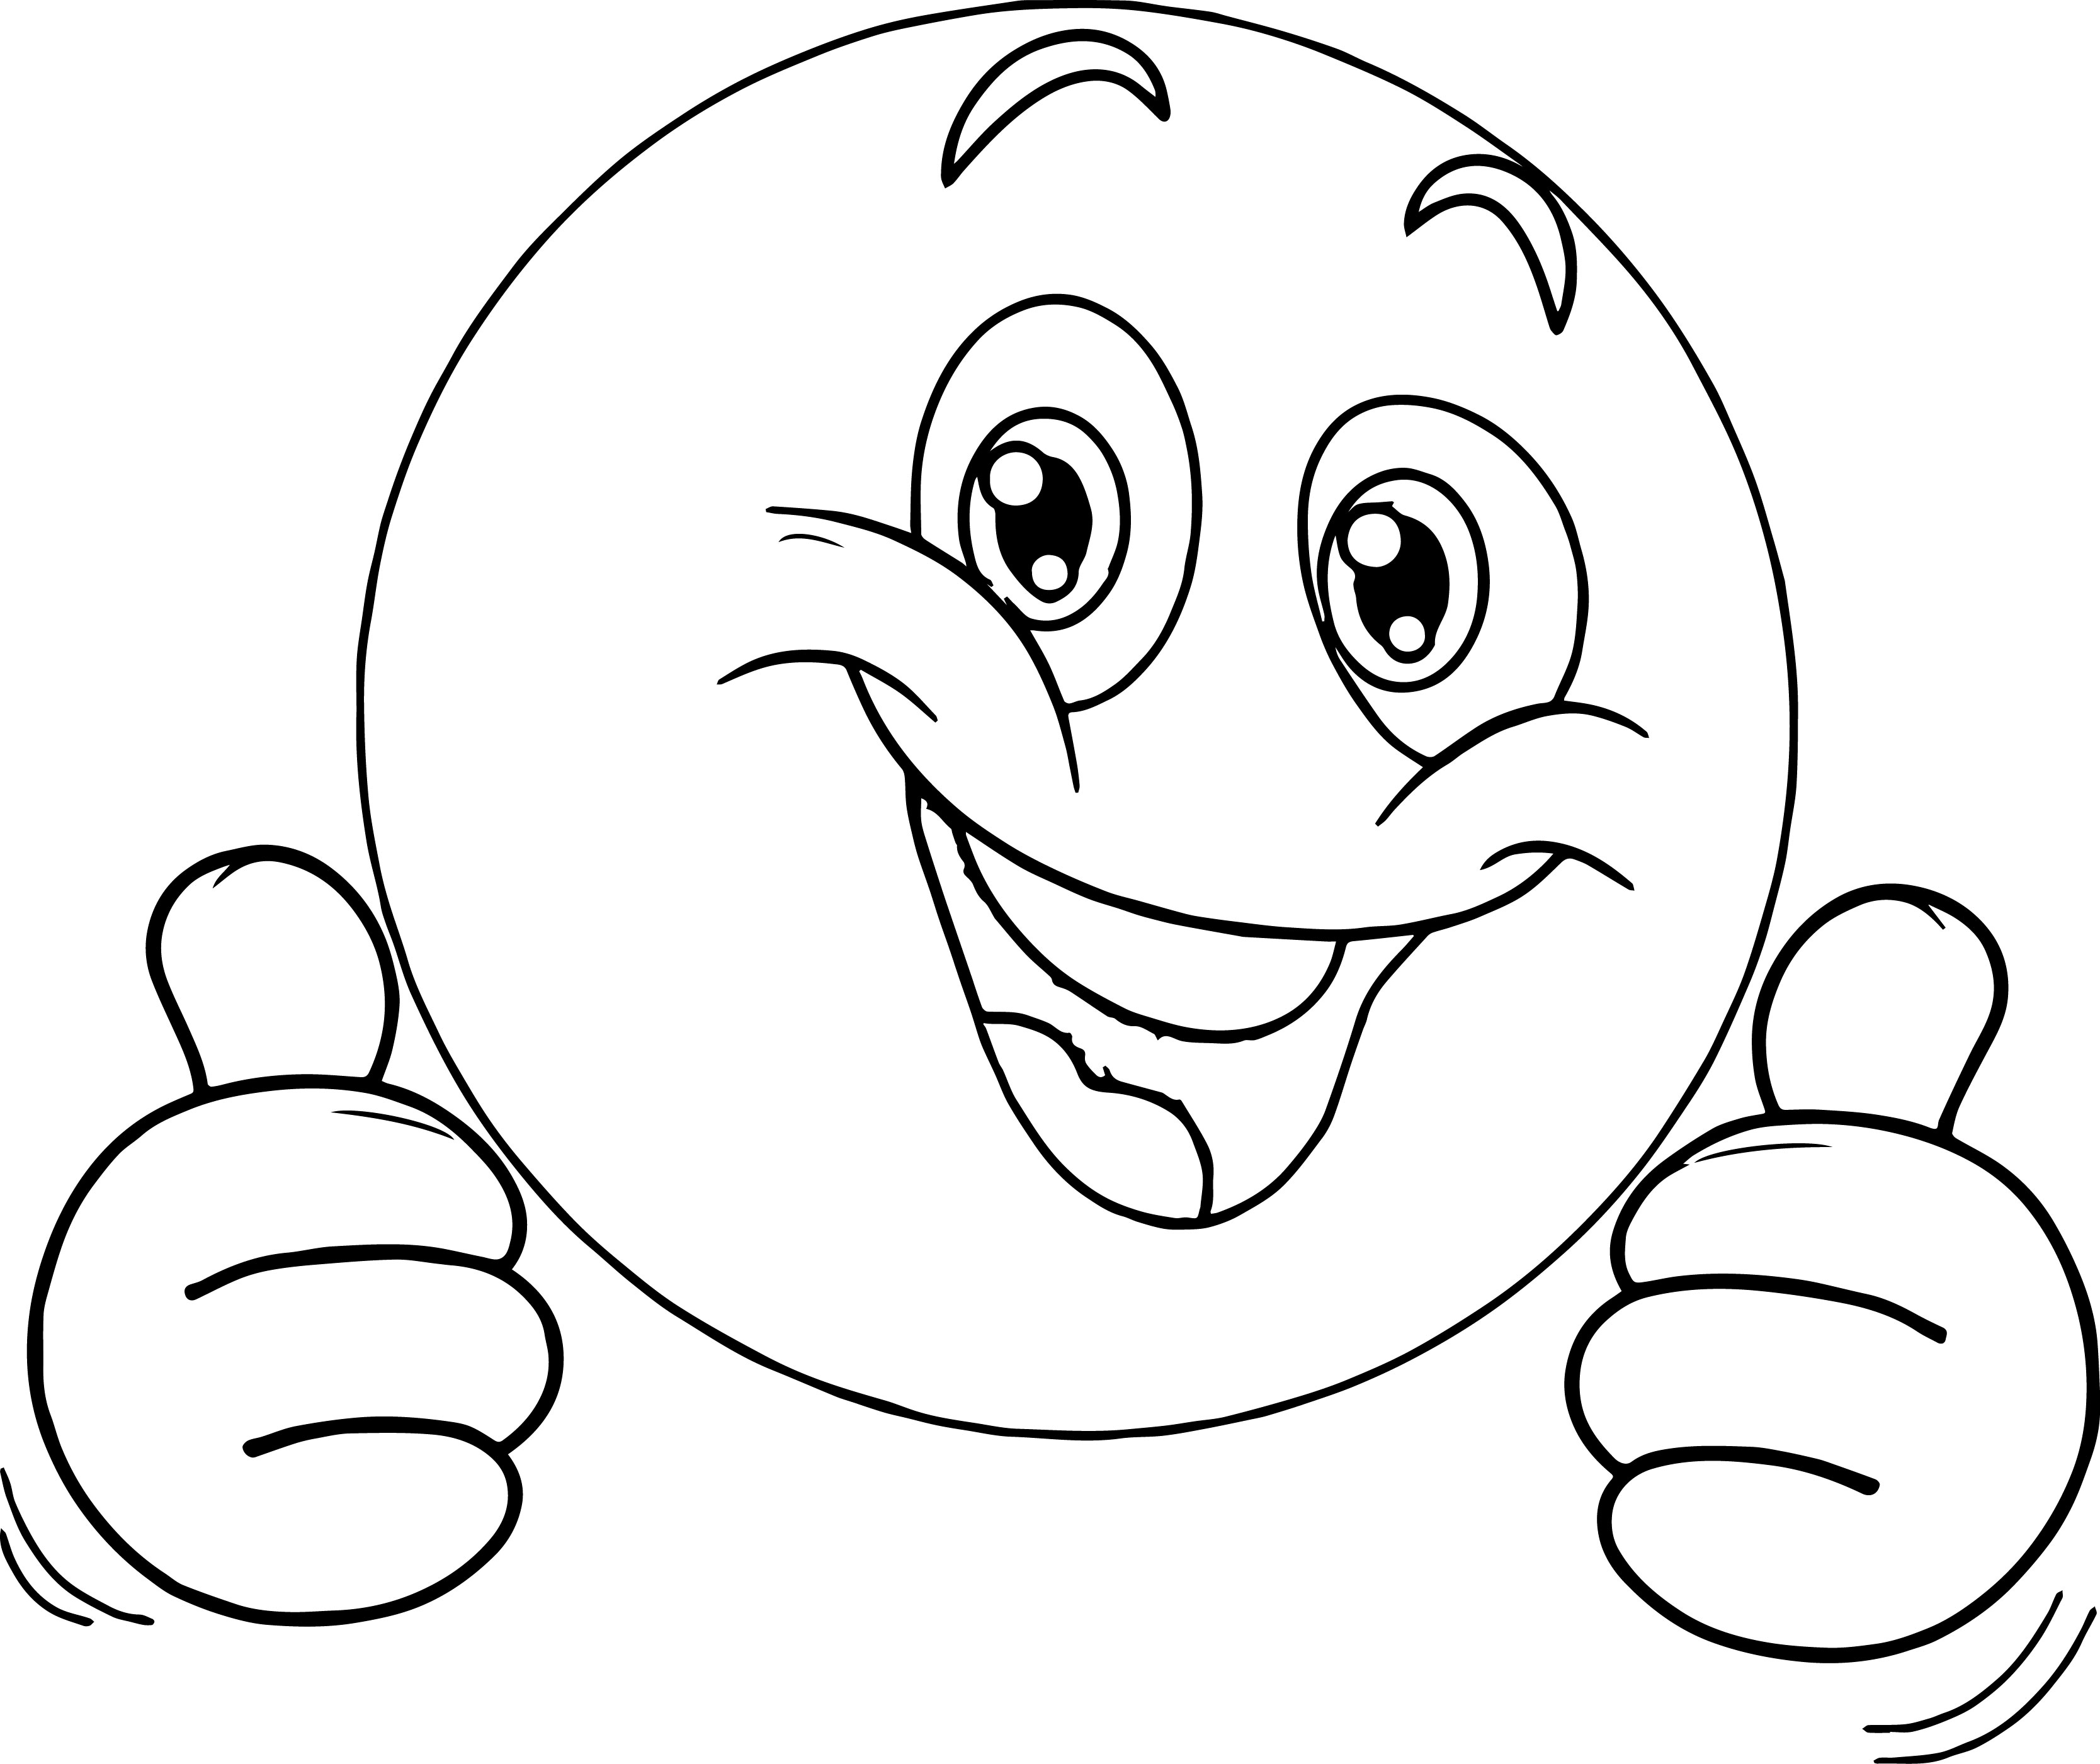 Very Happy Emoticon Face Coloring Page